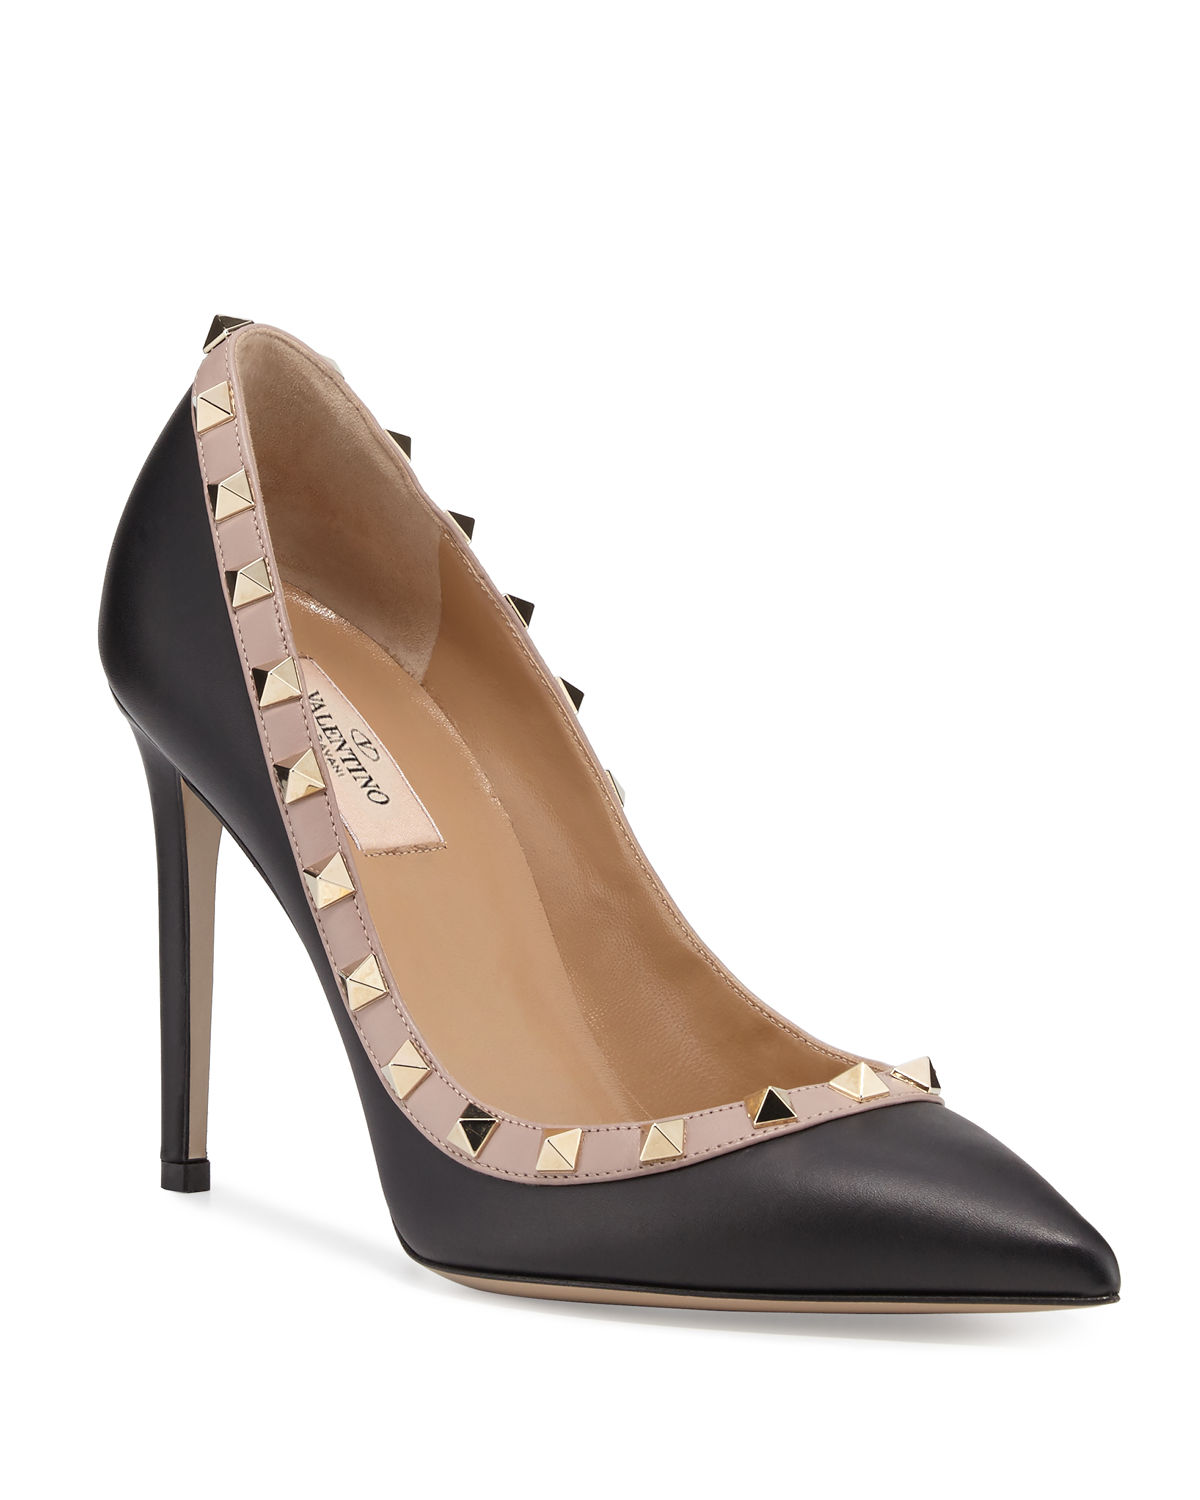 6952feab39 Valentino Garavani Rockstud Leather 100mm Pump | Neiman Marcus